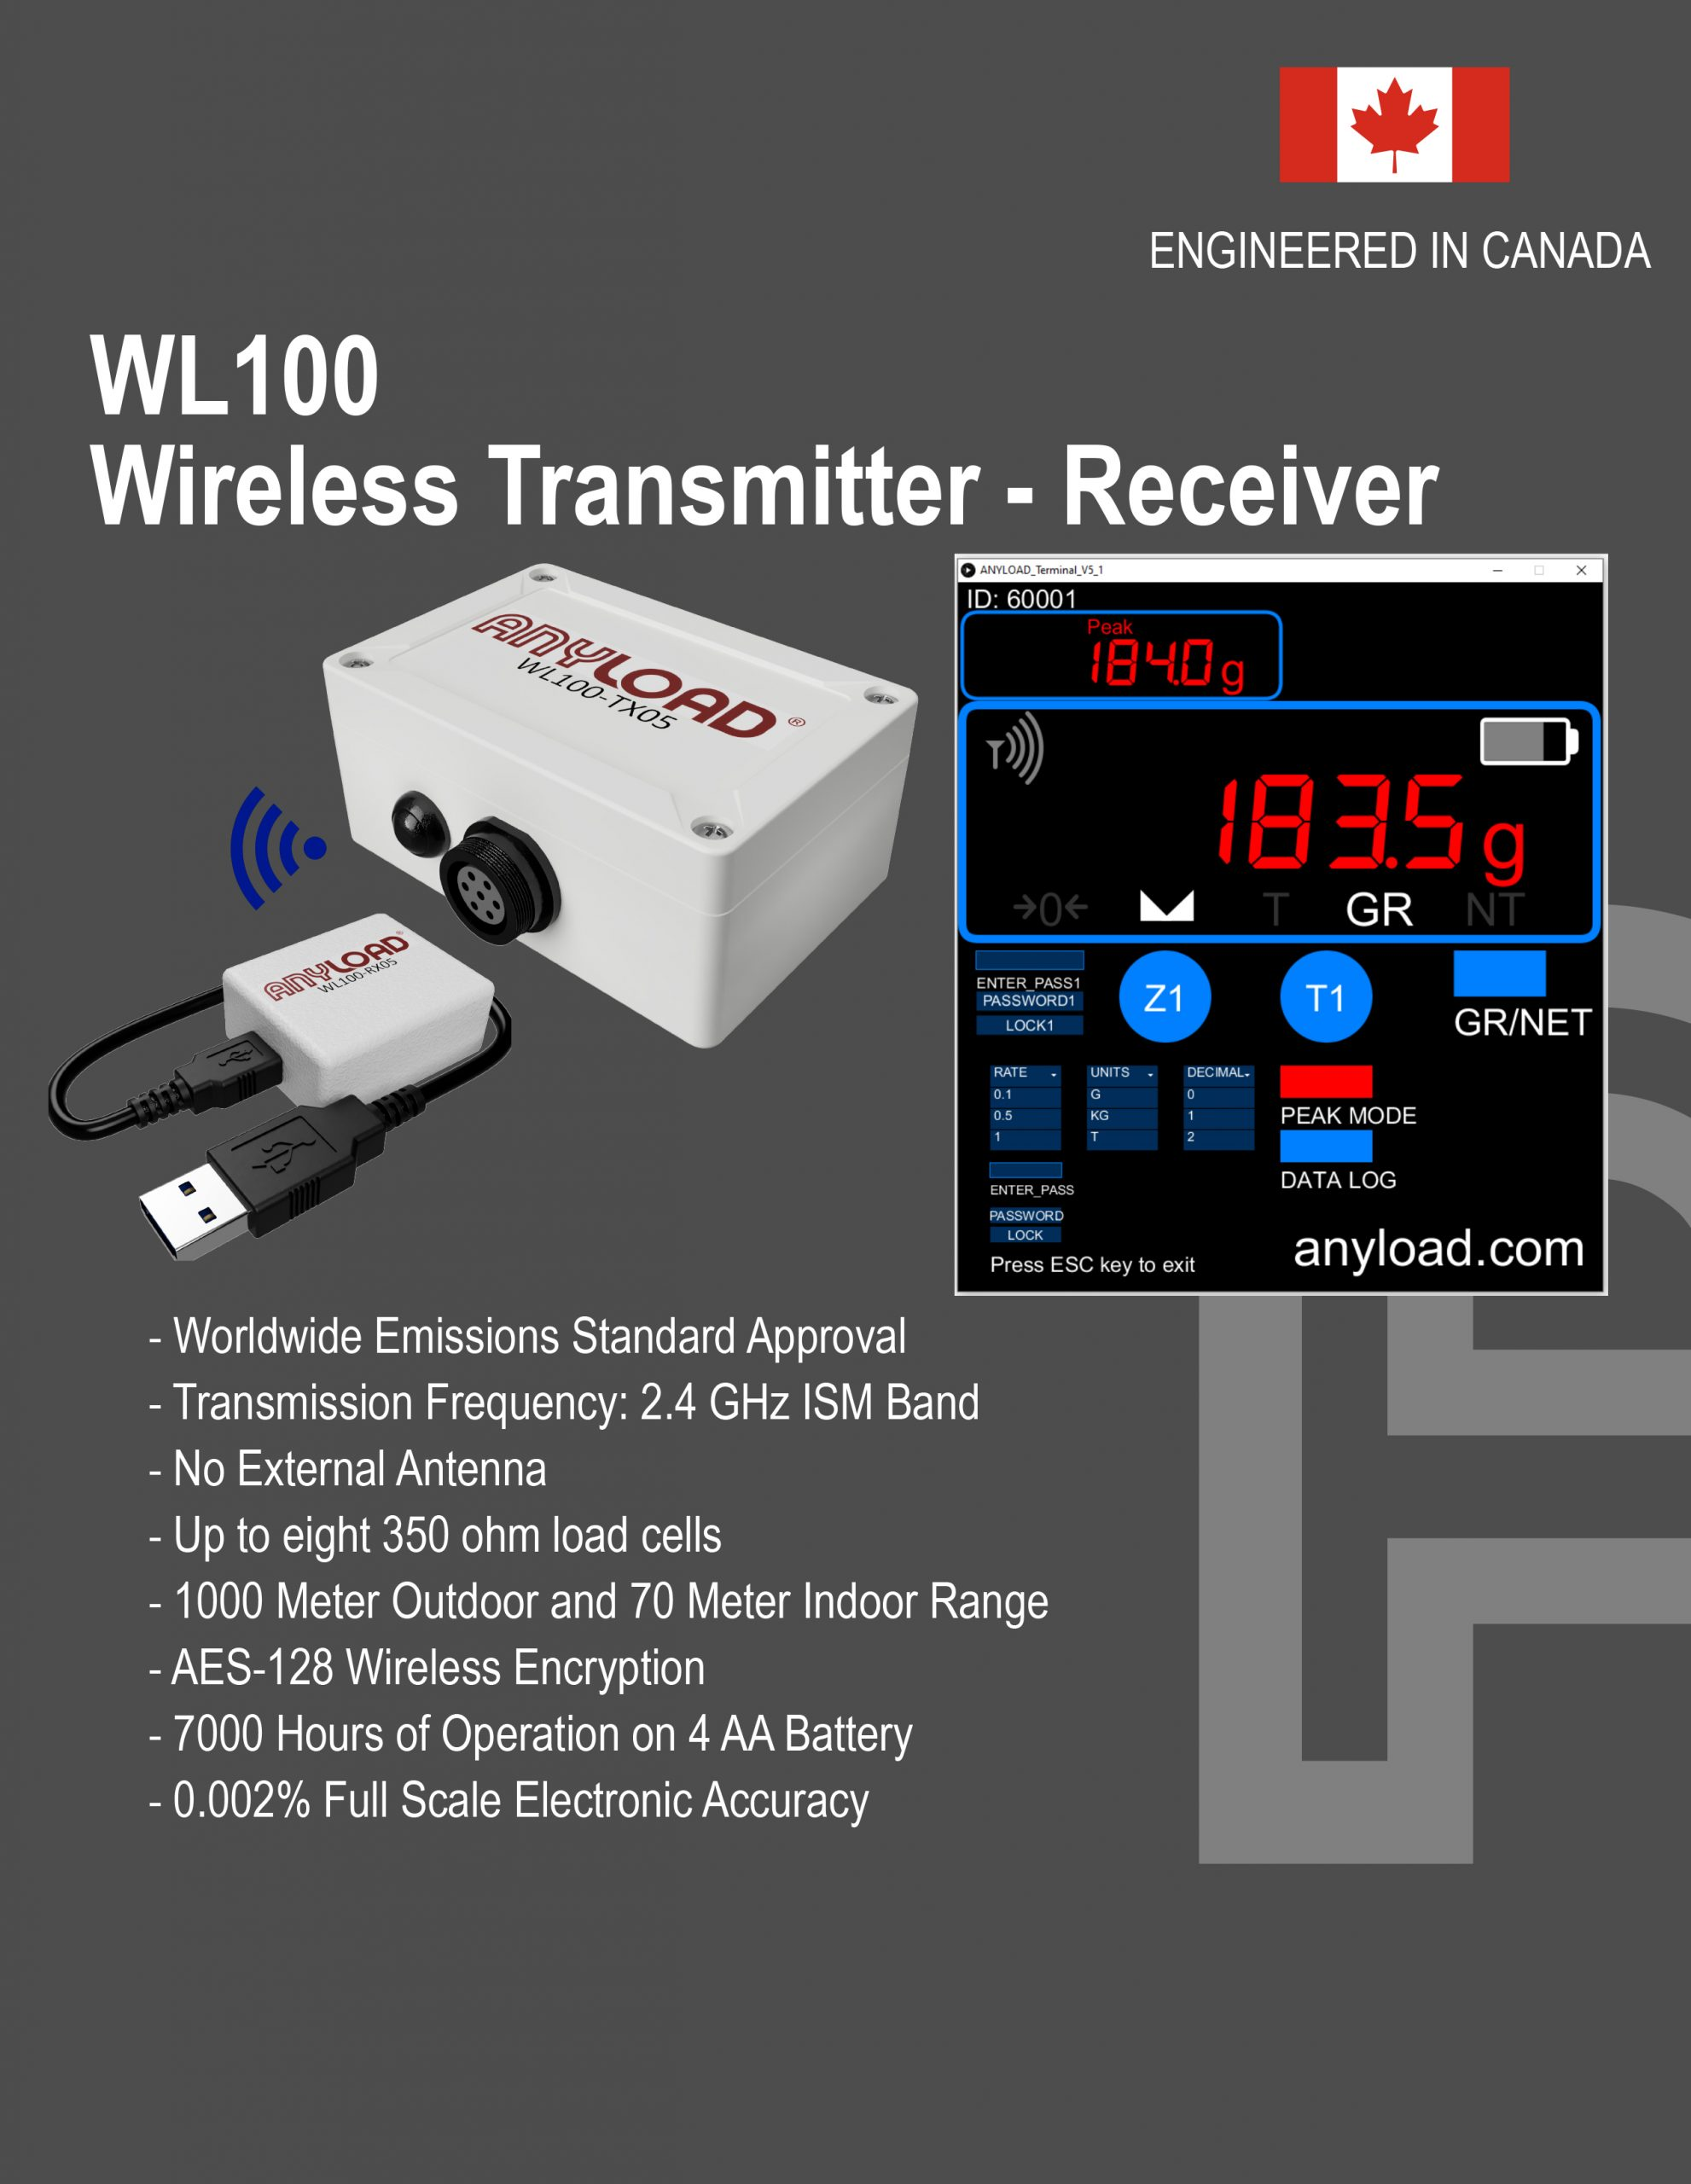 The New Anyload WL100 Wireless Transmitter-Receiver